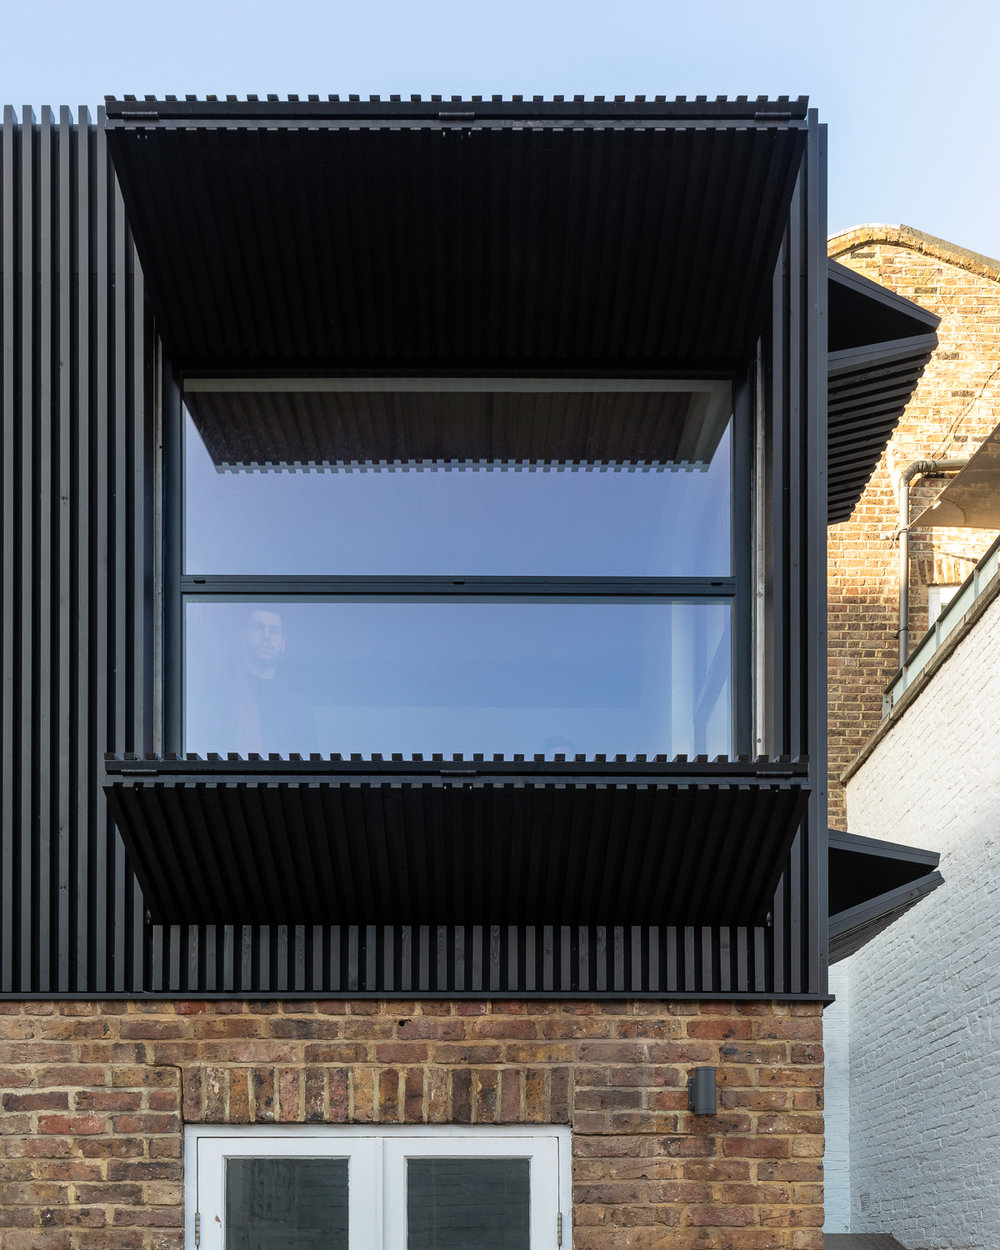 ID7A4959-Edit2 - 150119_MATA_Architects_Battishill_Street - Small.jpg